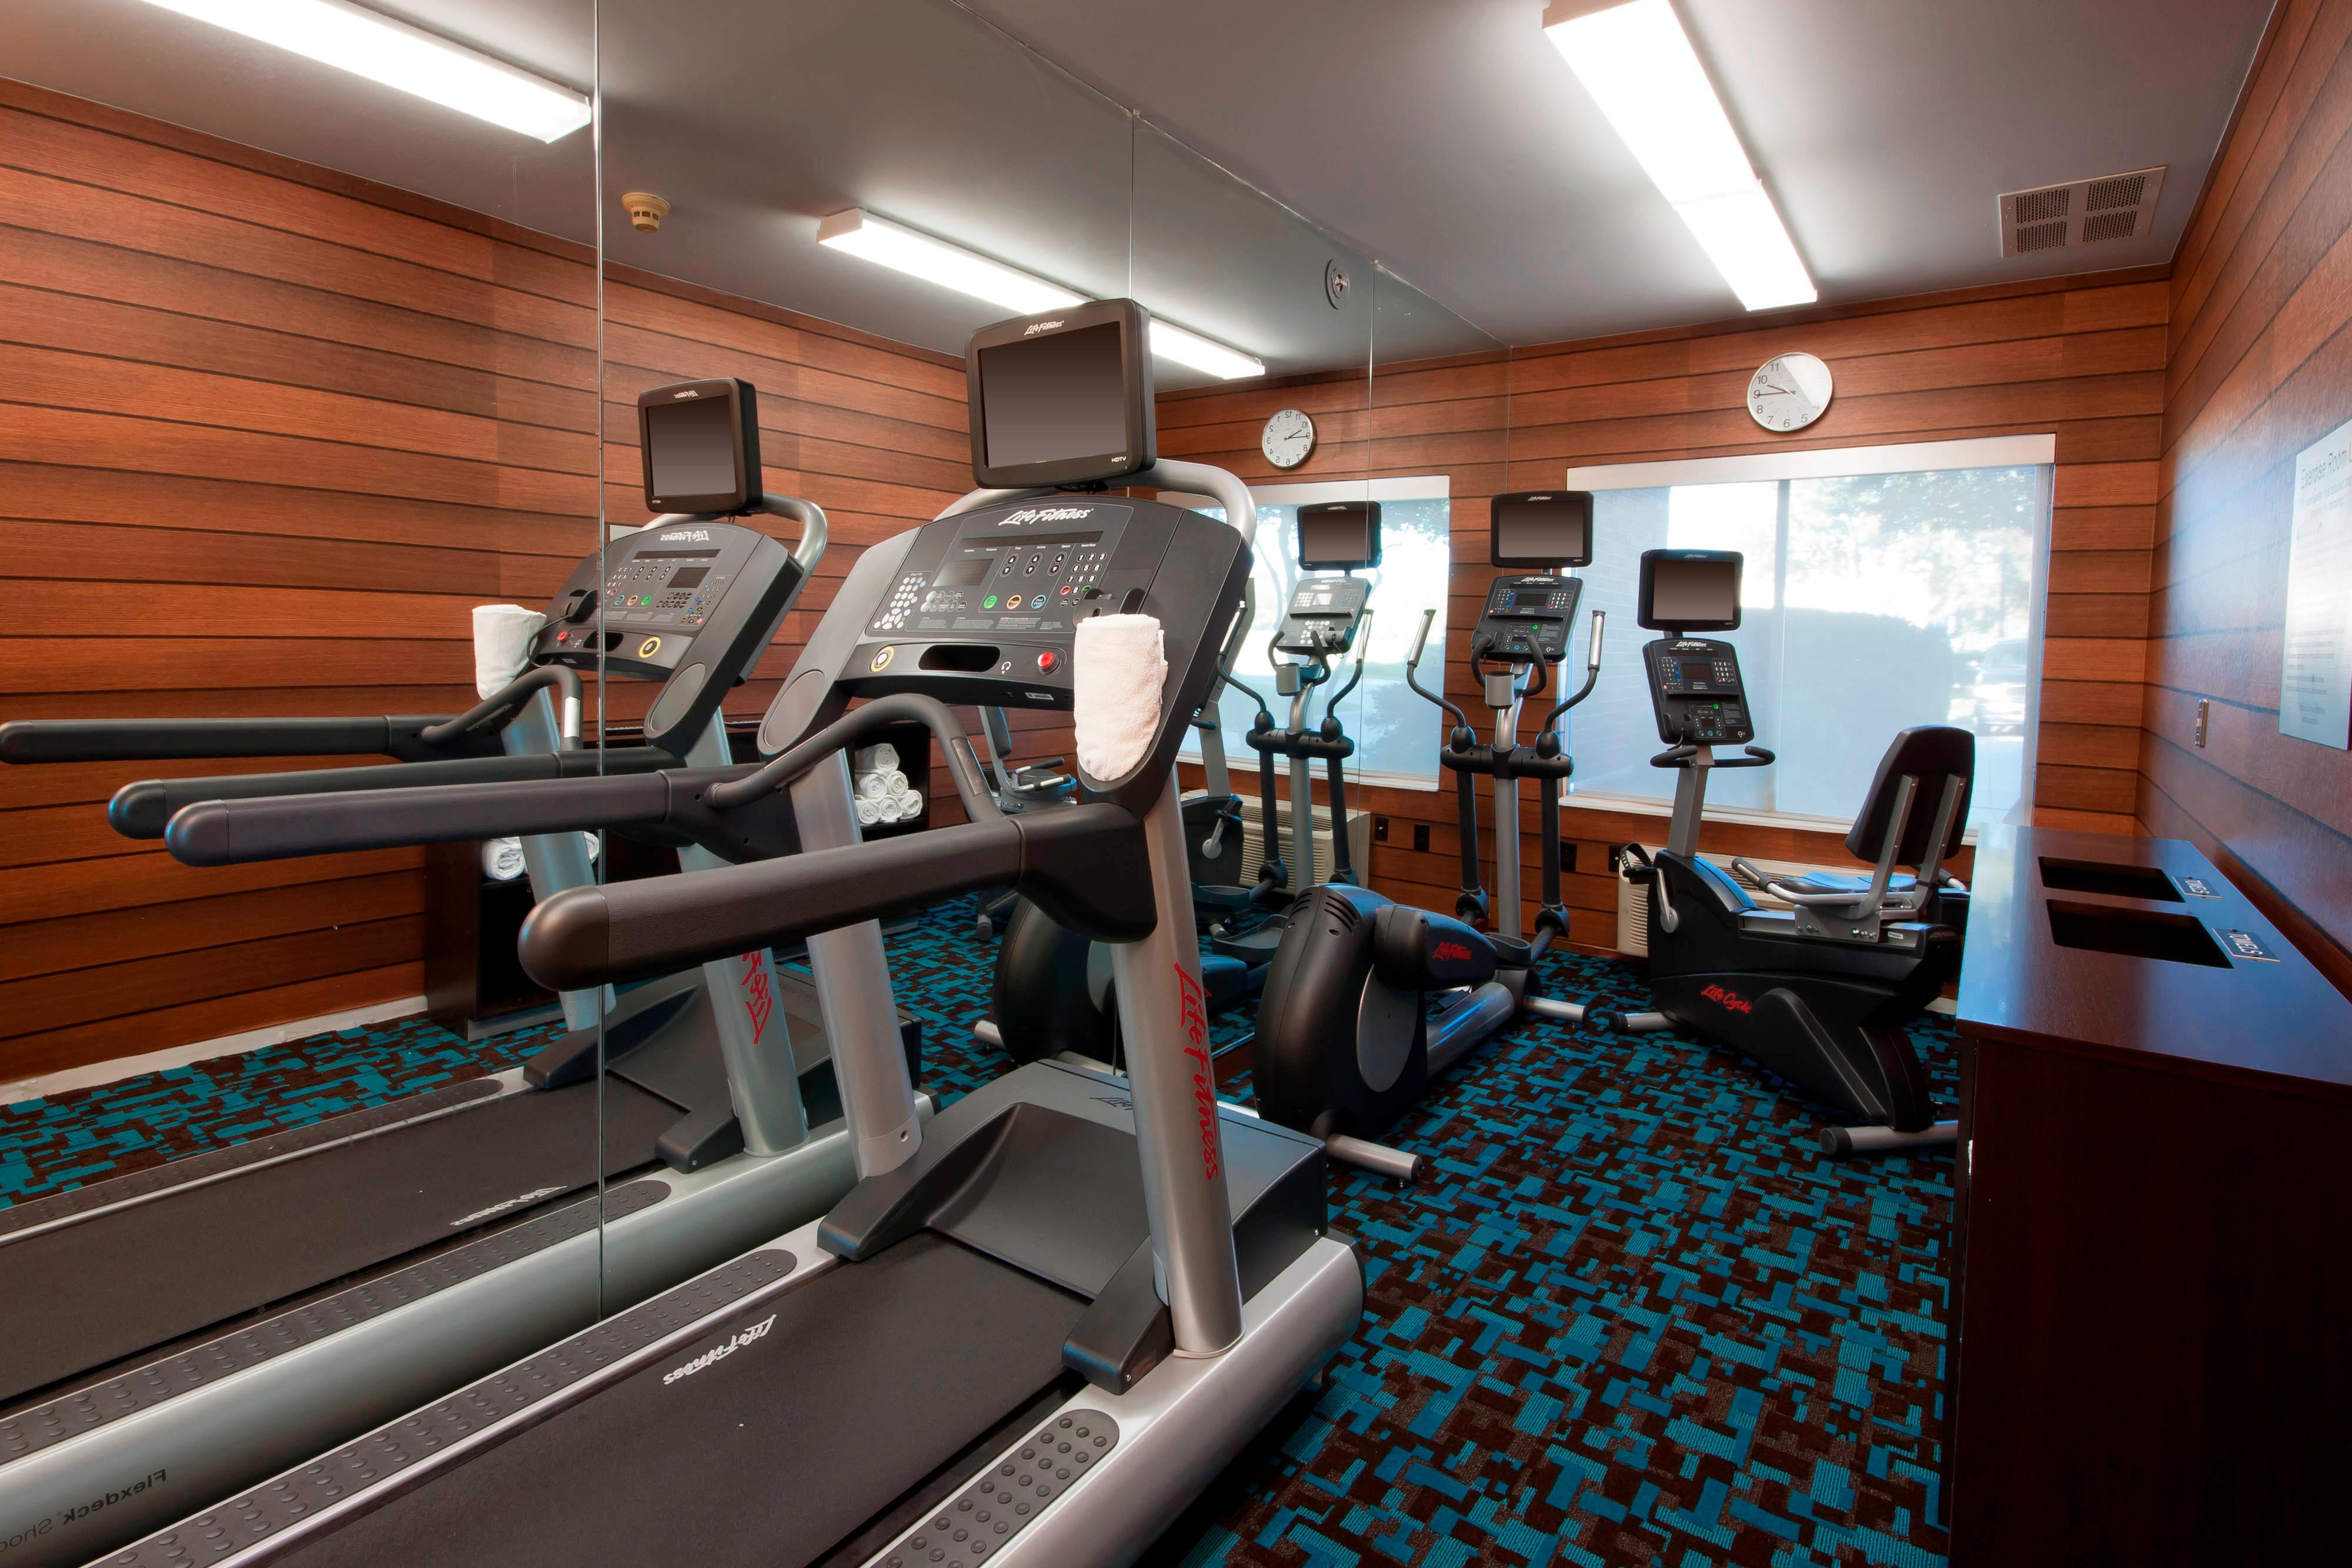 Fort Worth Hotel Gym